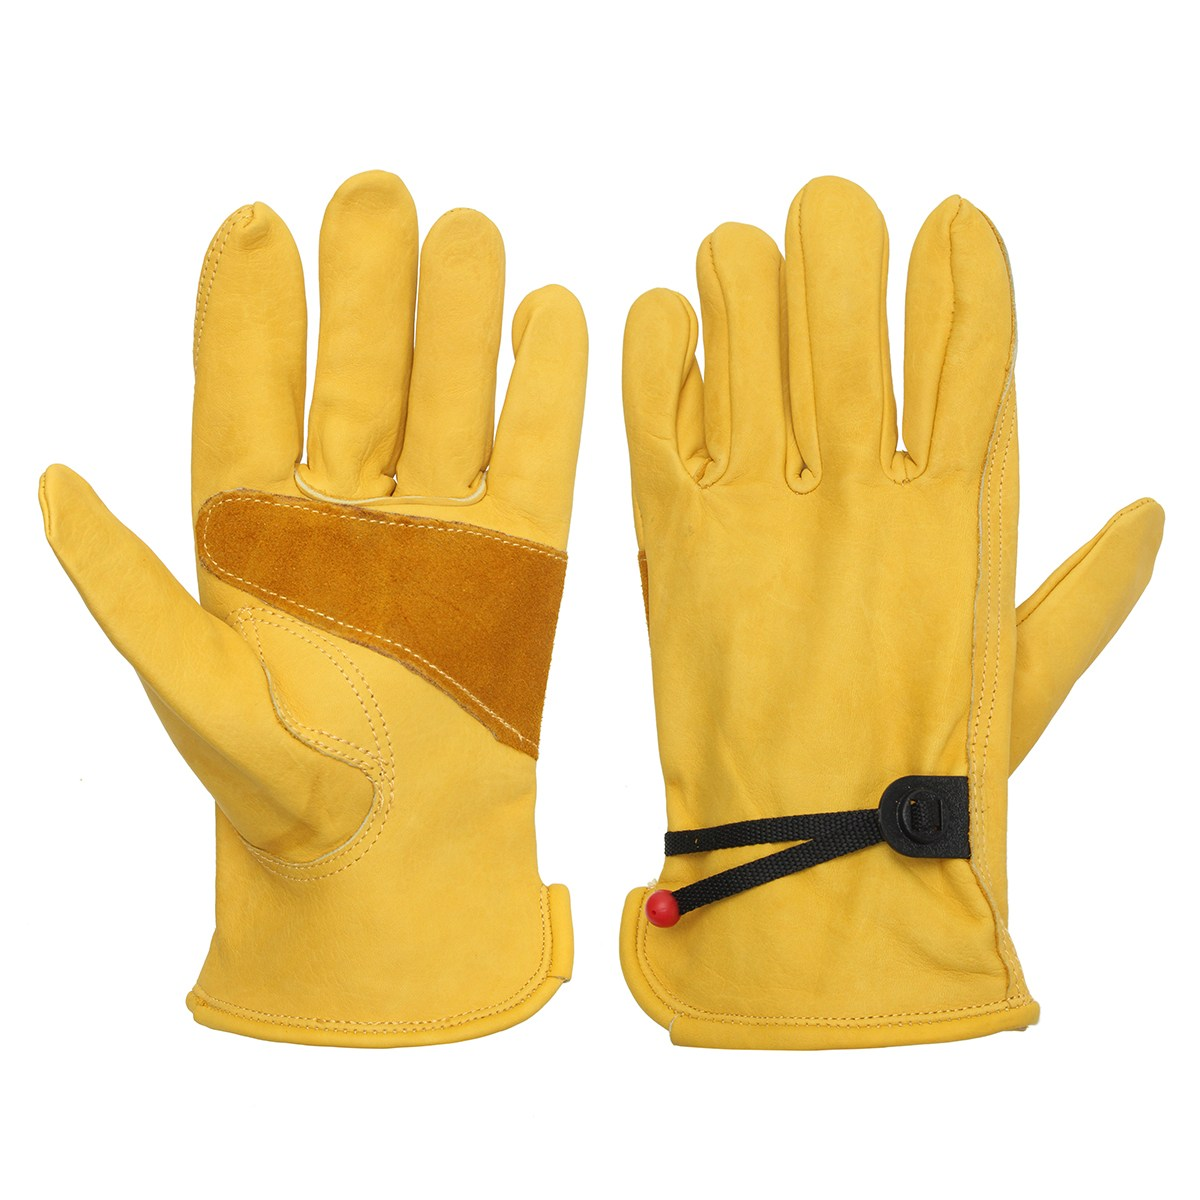 Safurance one Pair Yellow Driver Security Protection Wear Safety Workers Welding Moto Gloves Workplace Safety new safurance pro tree carving fall protection rock climbing equip gear rappelling harness workplace safety